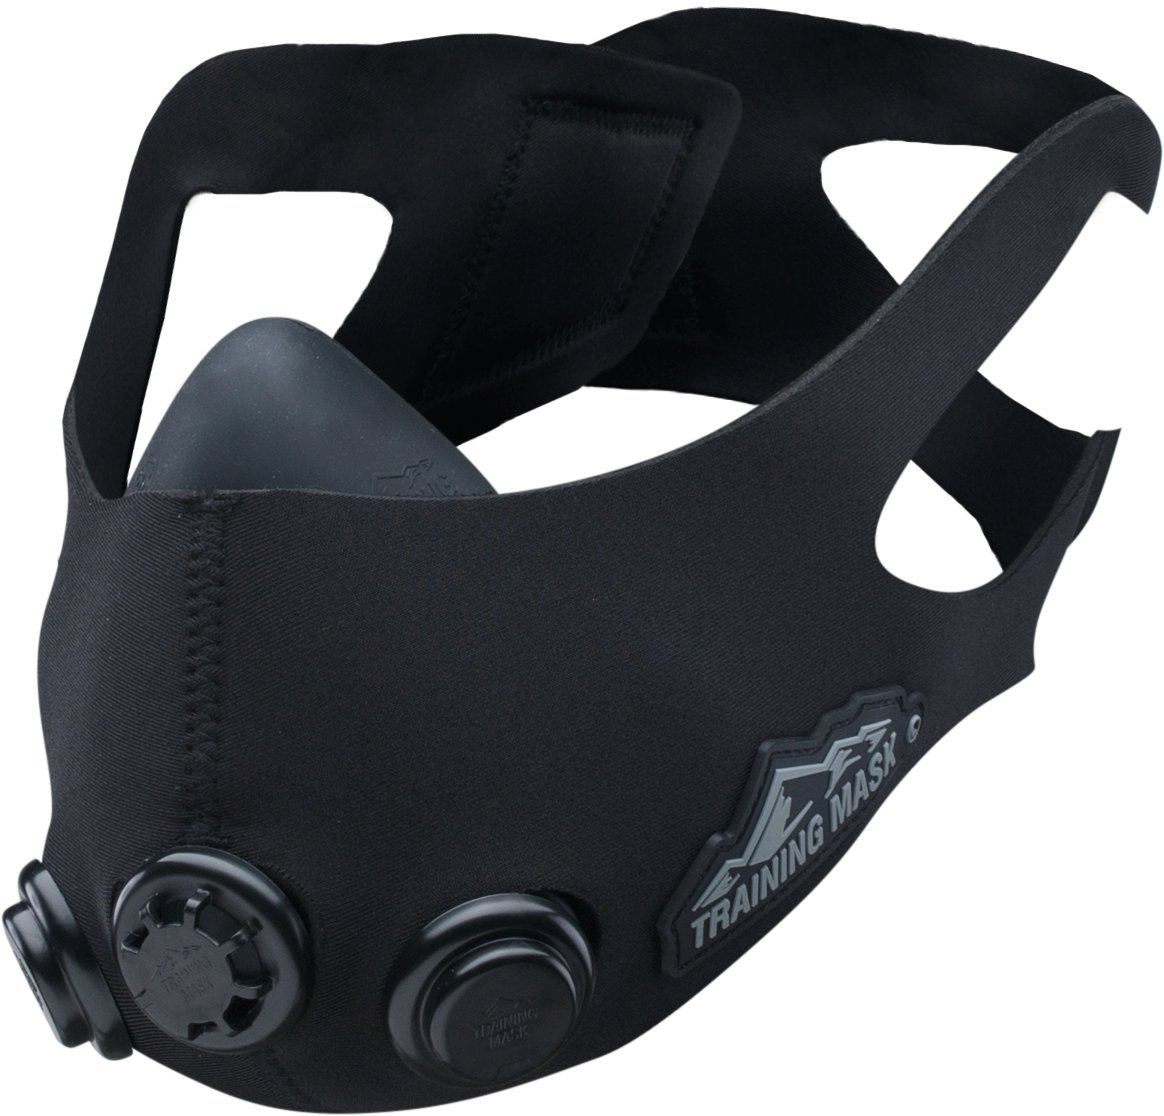 Training Mask 2.0, Black , undefined